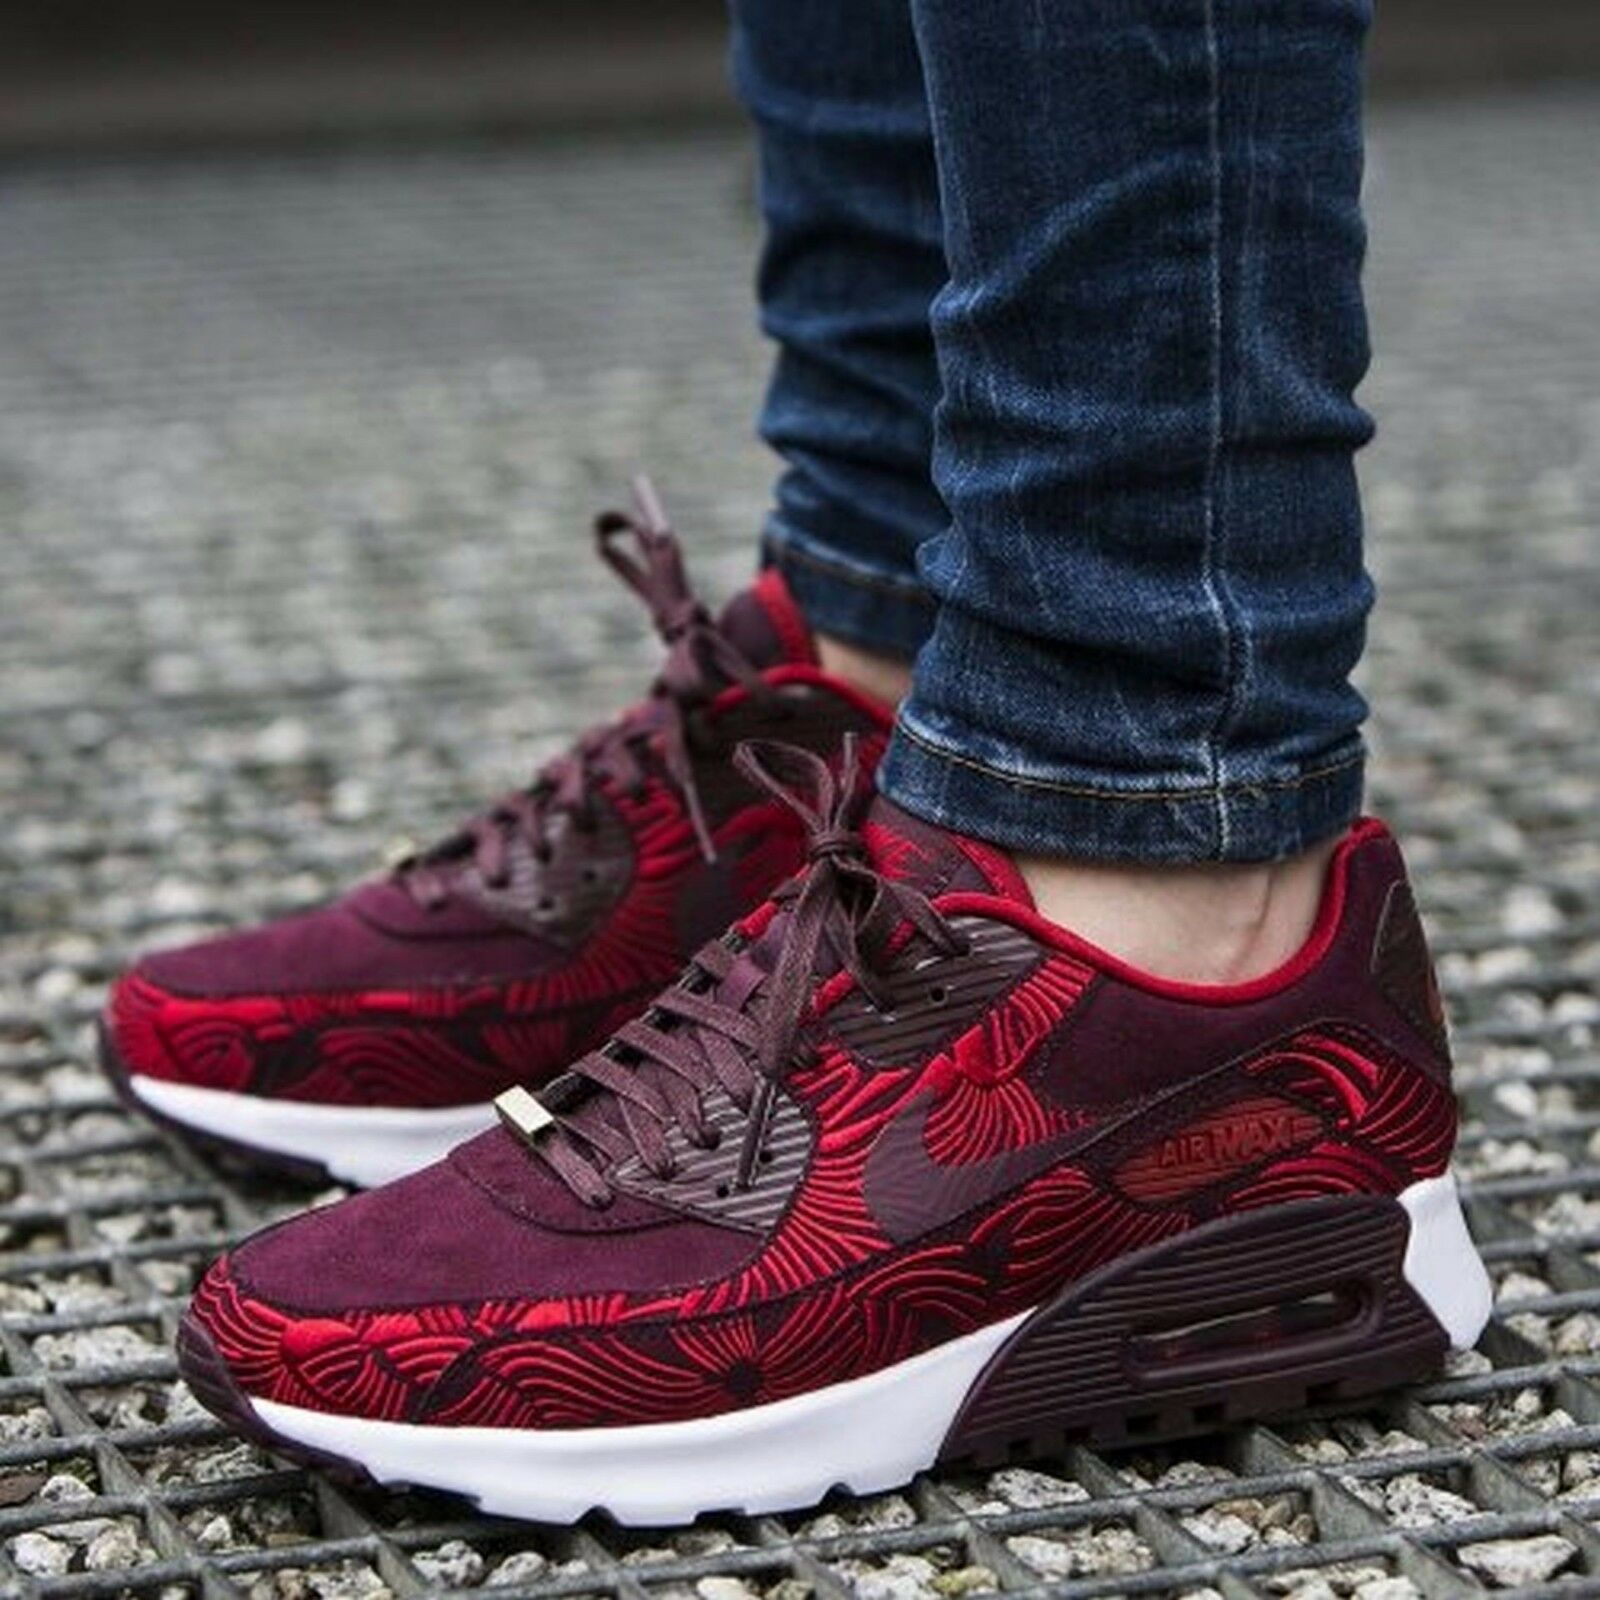 NIKE AIR MAX 90 ULTRA LOTC QS SHANGHAI NIGHT MAROON/GYM RED 847154-600 W SZ 7